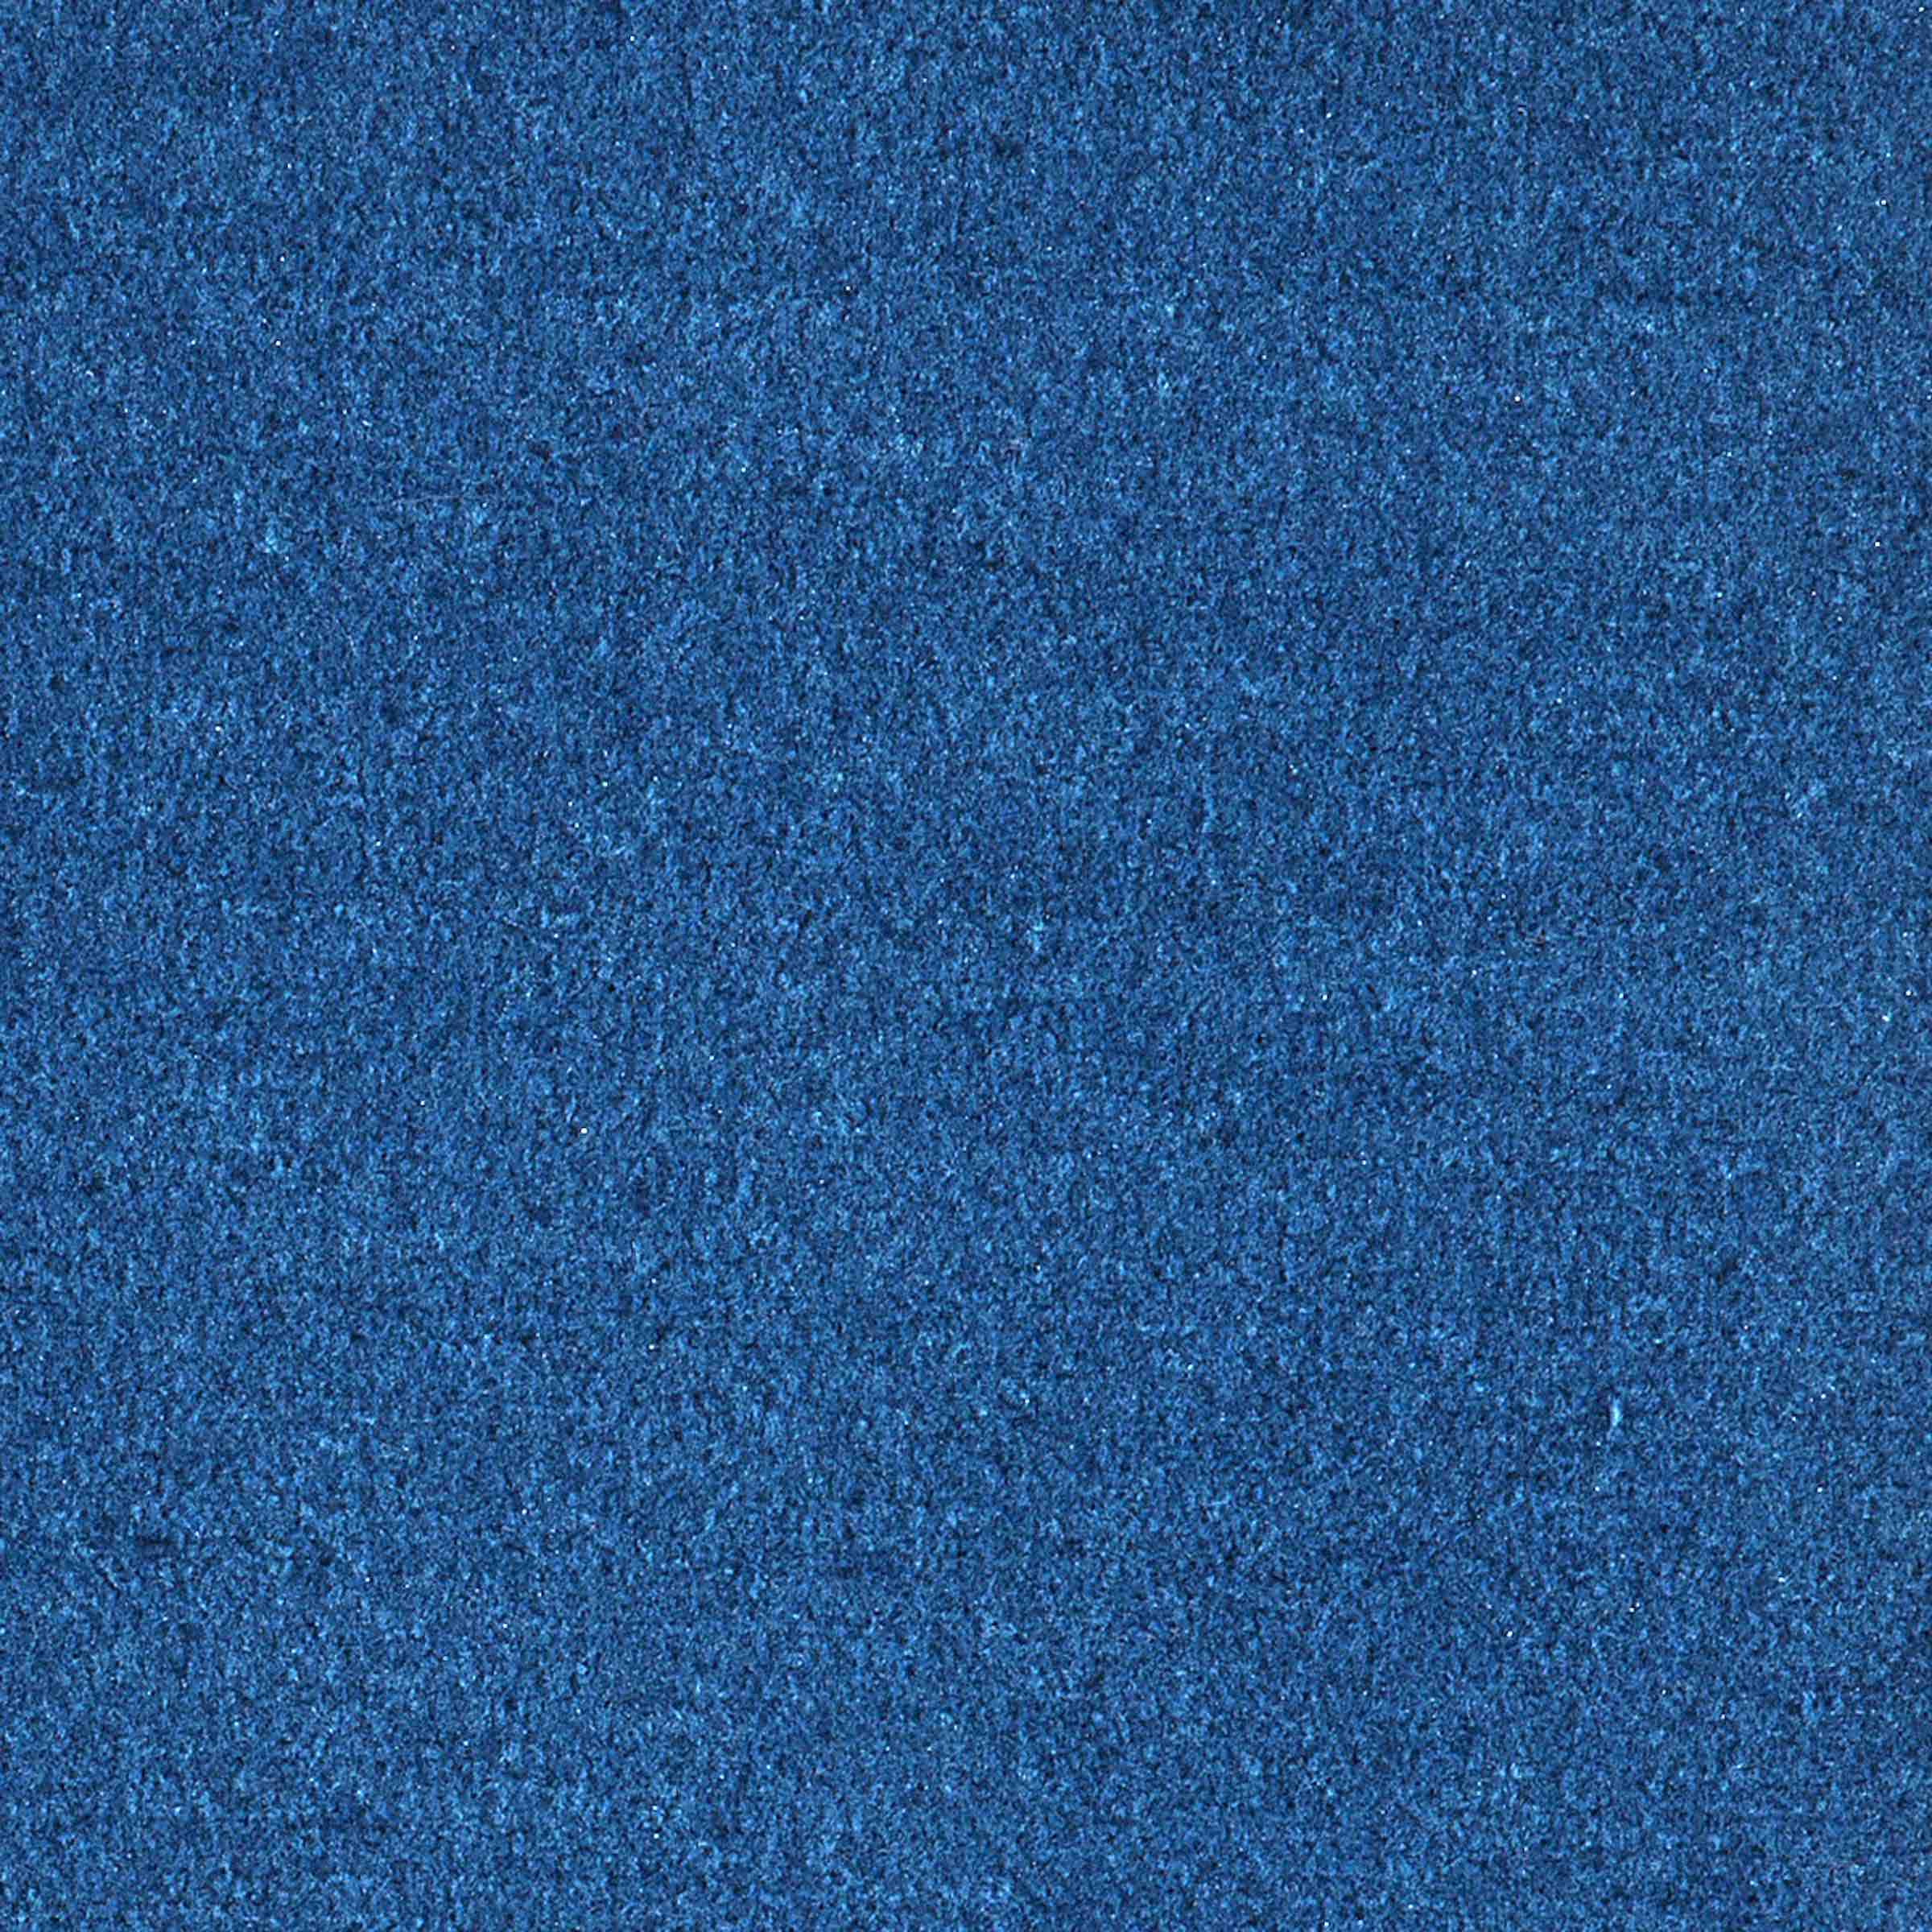 Workspace Cut Pile | Biscay Blue, 6051C | Paragon Carpet Tiles | Commercial Carpet Tiles